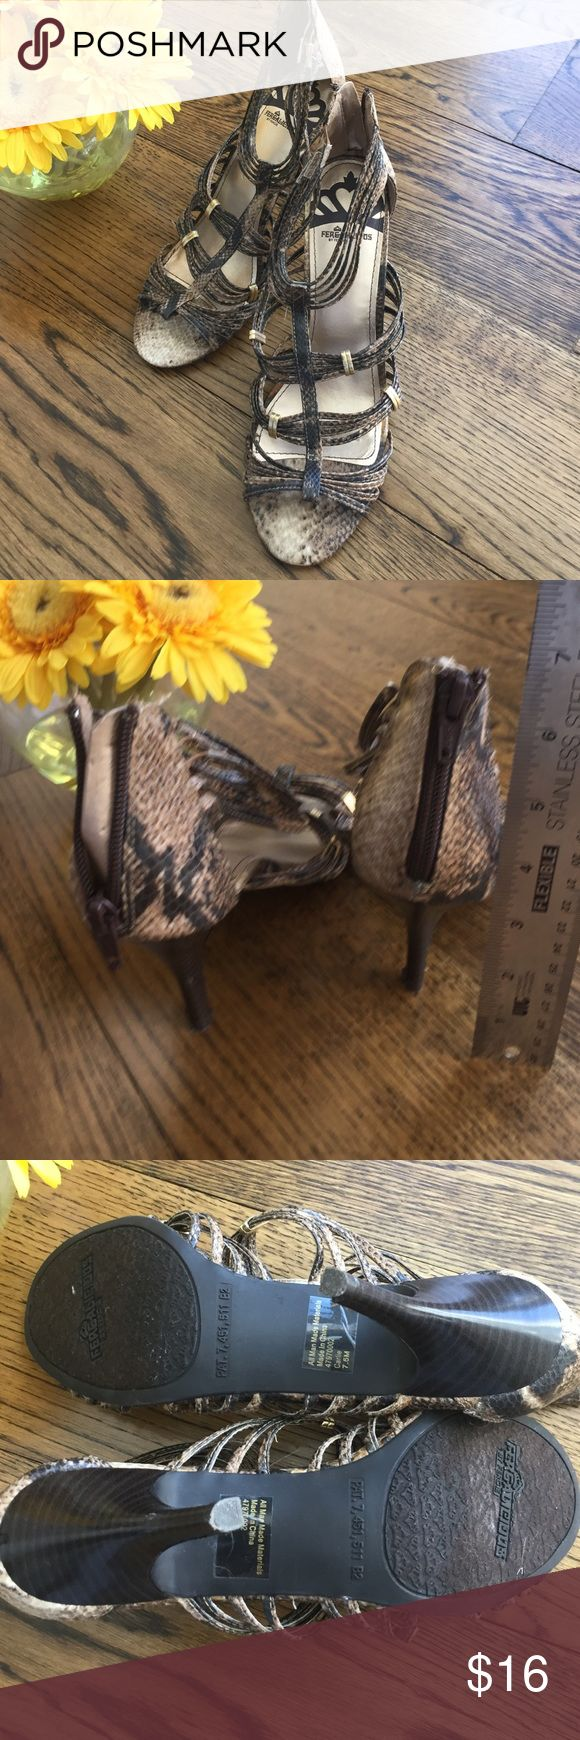 "Women's Brown animal print heels w/zip back sz 7.5 Pretty shoe from Fergalicious!  Straps bound w/gold detail.  Zip up back for comfortable fit.  Heel is 3"" Fergalicious Shoes Heels"